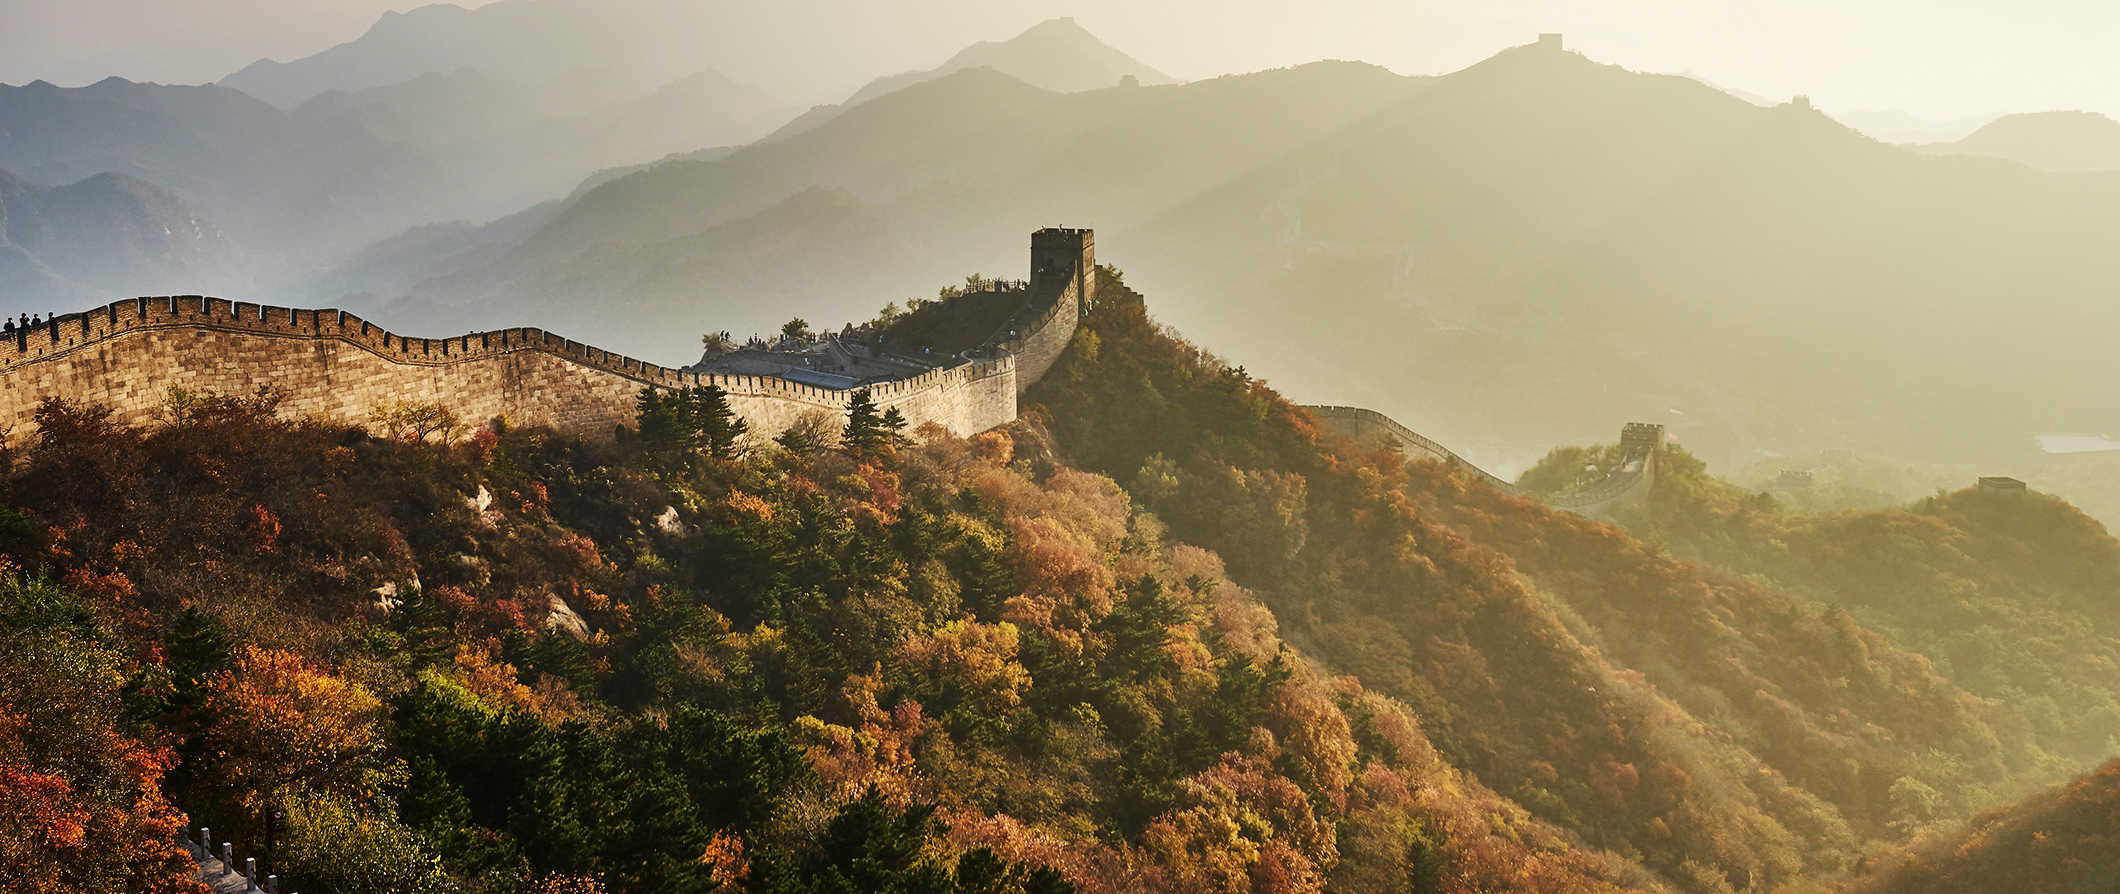 The Great Wall of China (Indepth Guides Series Book 1)